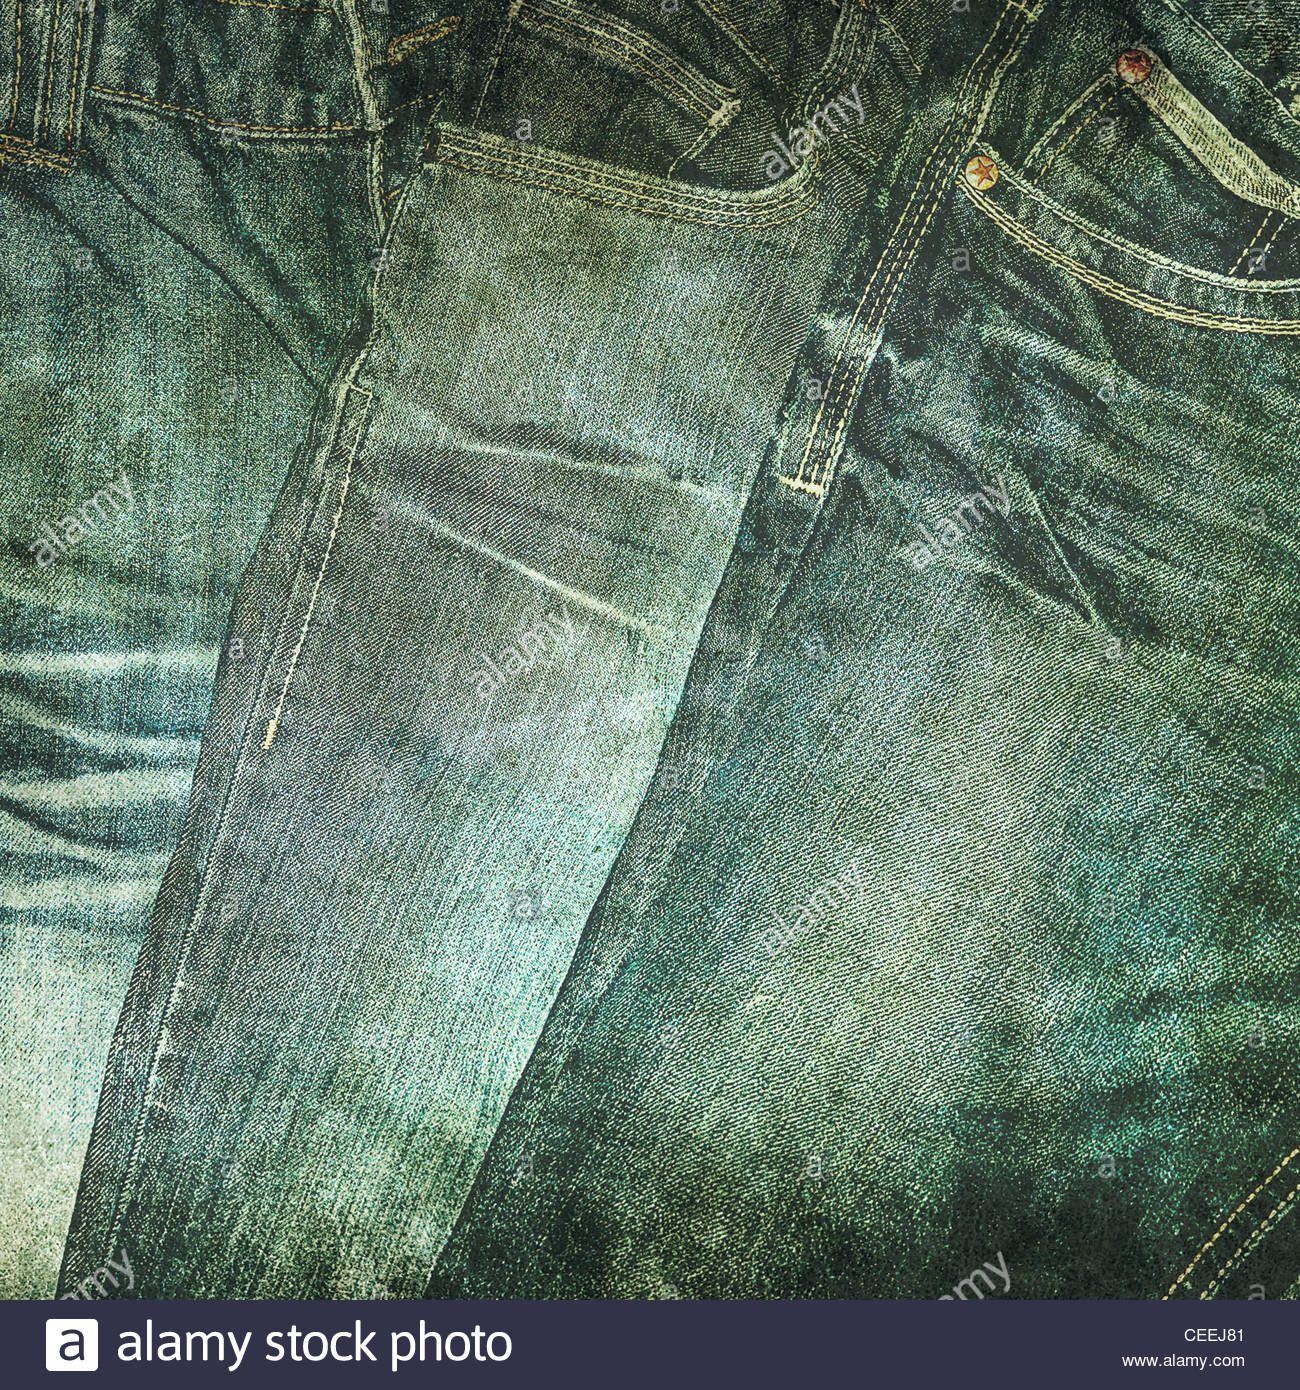 old jeans photo - Stock Image